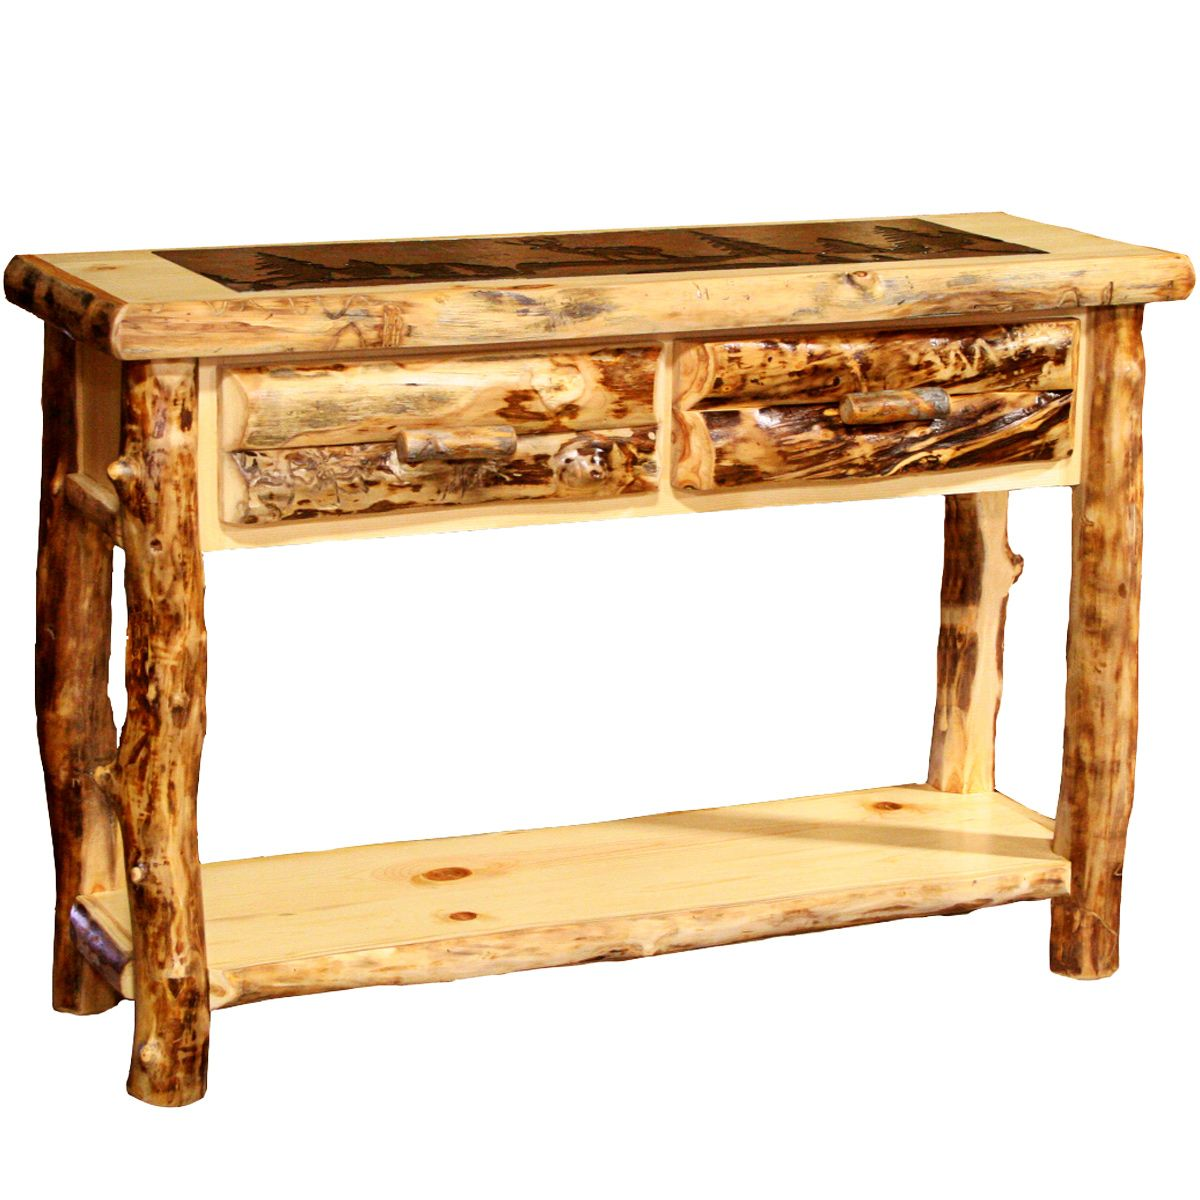 Aspen Sofa Table with Slate Top - Horse & Trees